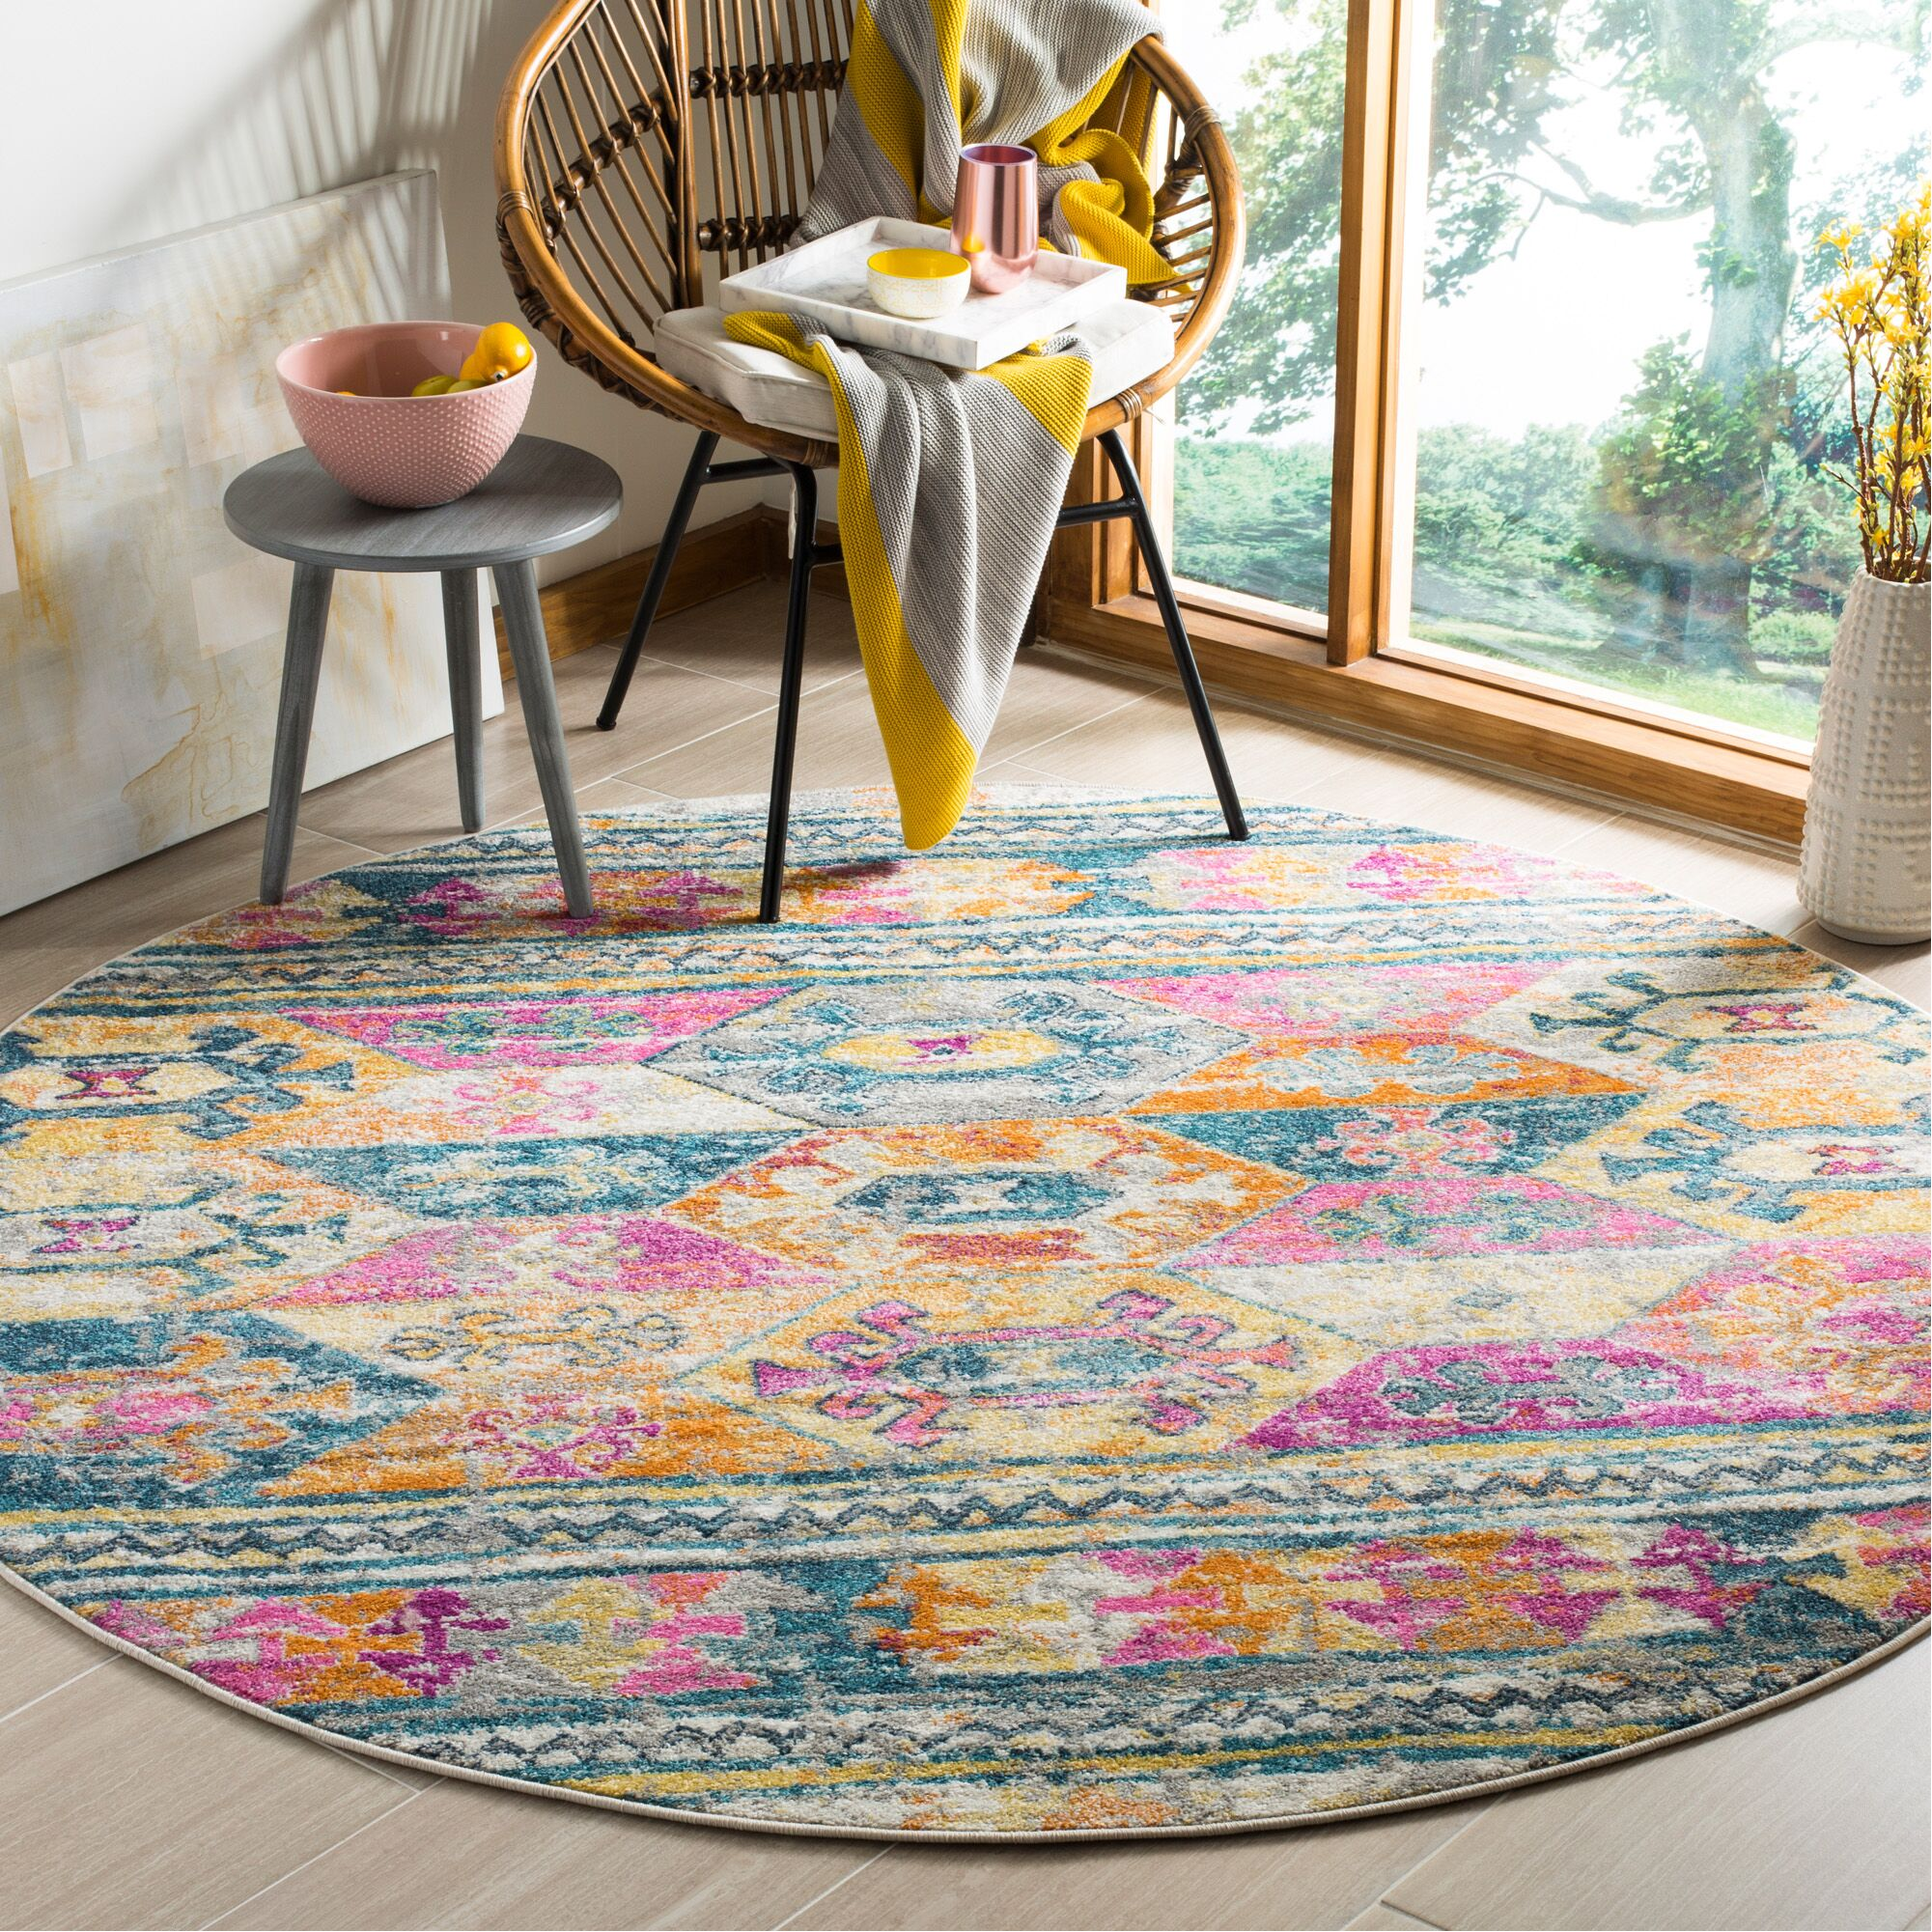 Esparza Pink Area Rug Rug Size: Round 6'7